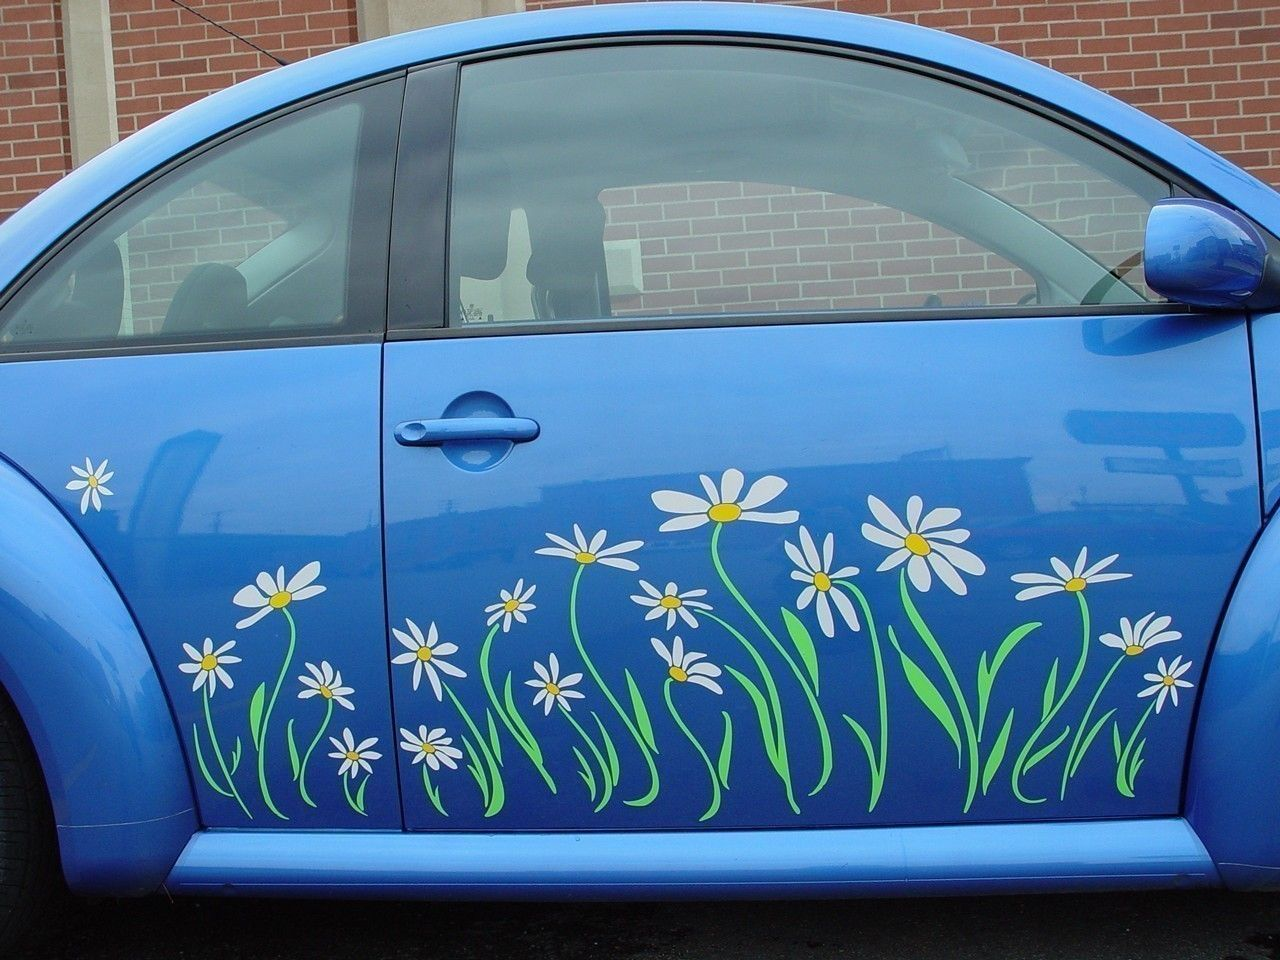 Daisy decal vinyl sticker graphics beetle side panel for 2011 and older models 125 00 via etsy